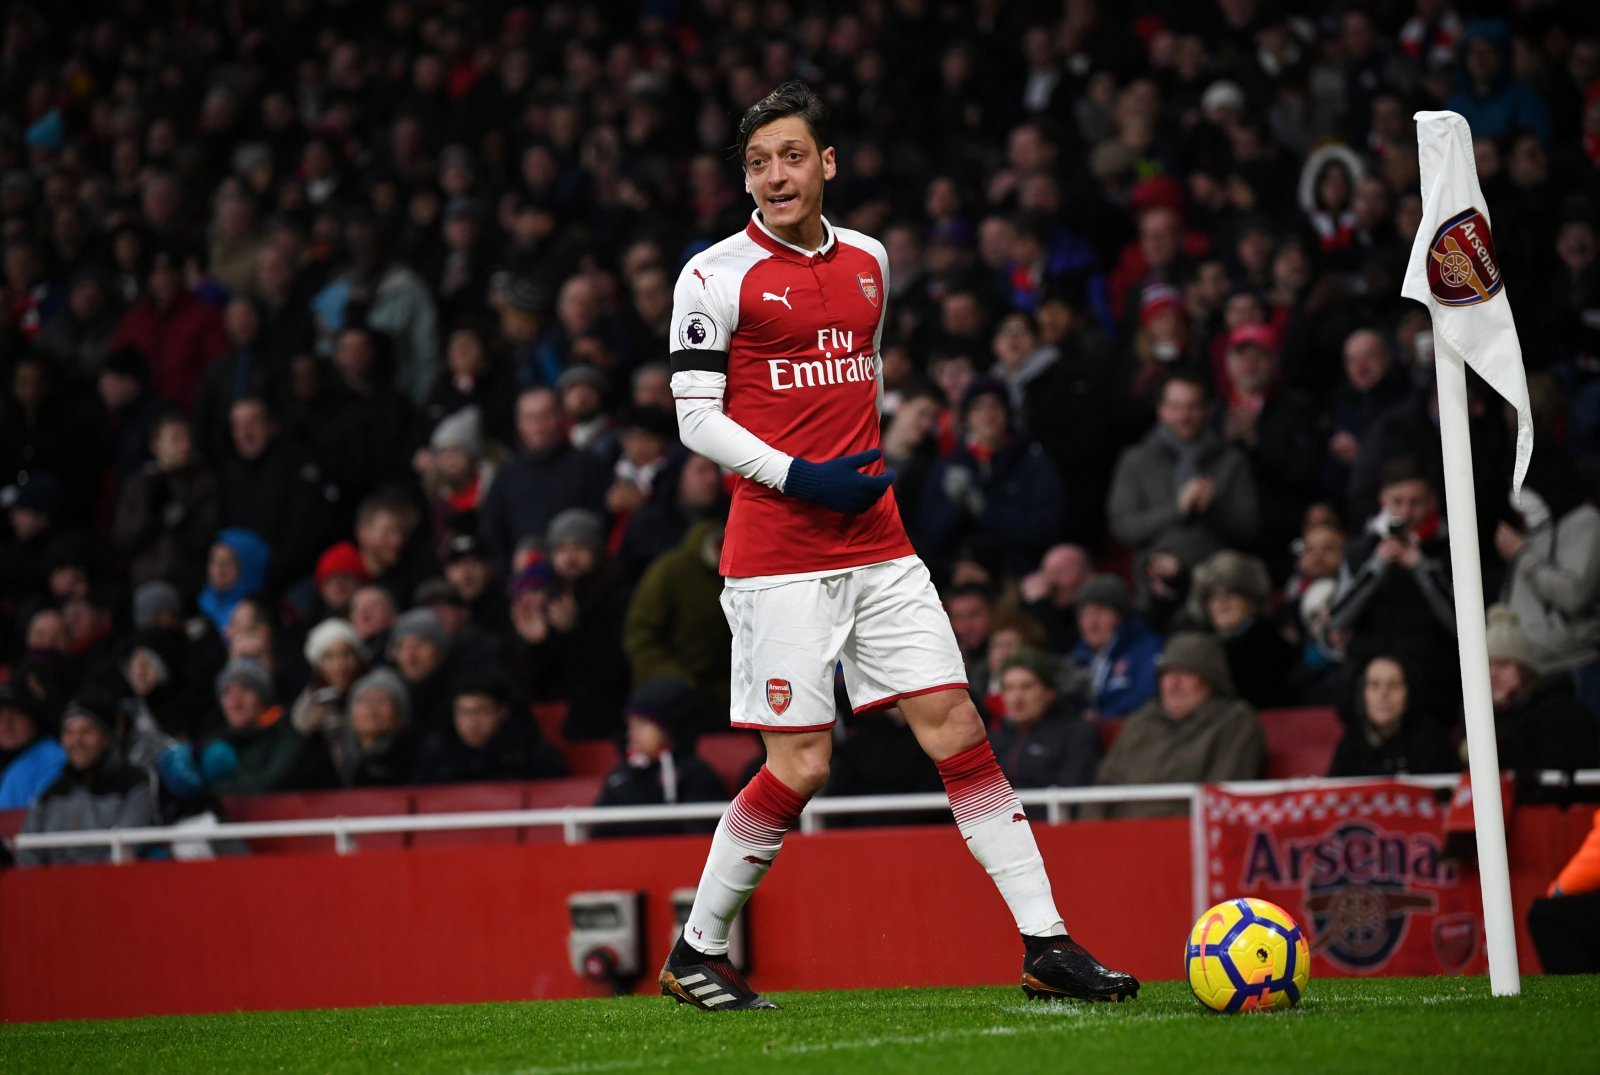 Arsenal legend goes against popular opinion to back Ozil